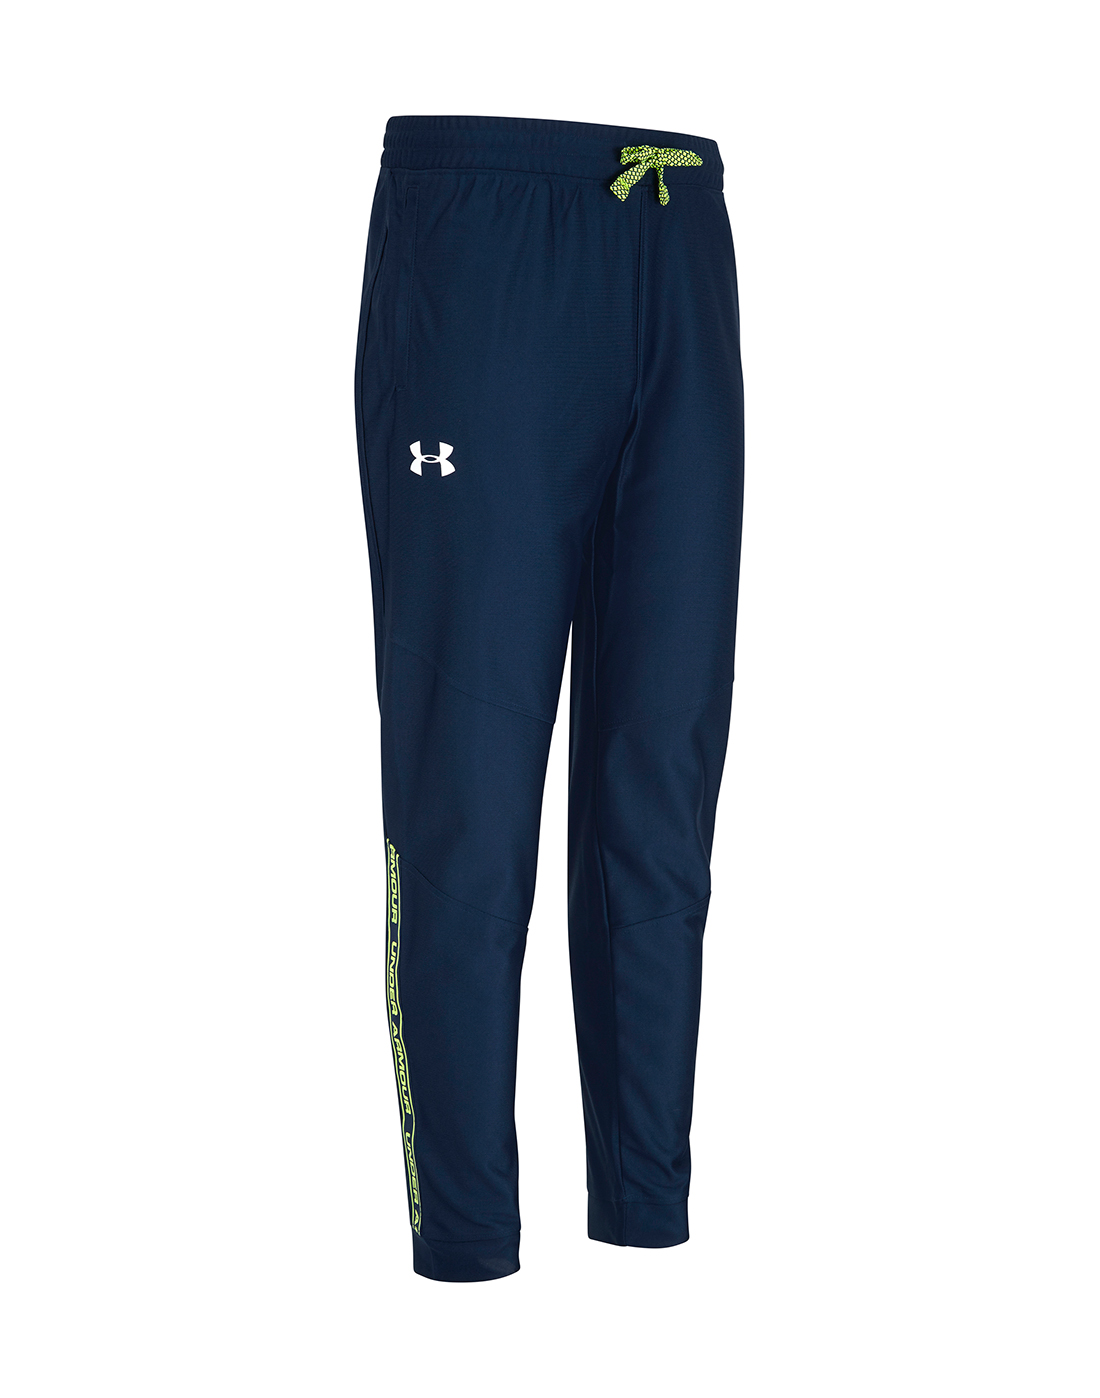 1bfe1abd0 Under Armour Older Boys Taping Pants | Life Style Sports